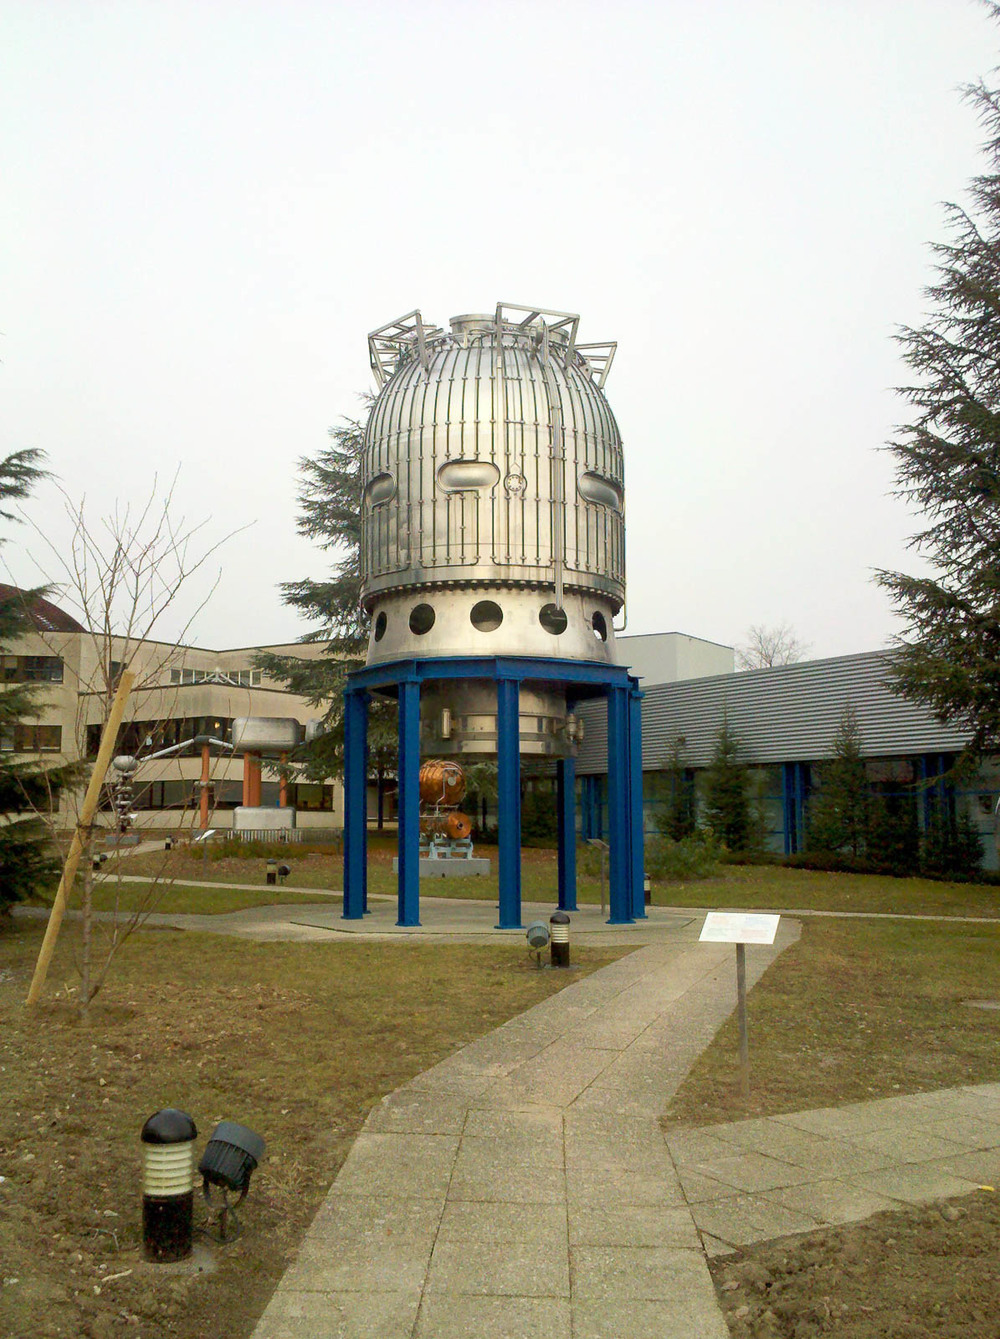 The Big European Bubble Chamber CERN now stands outside CERN museum as a sculpture.